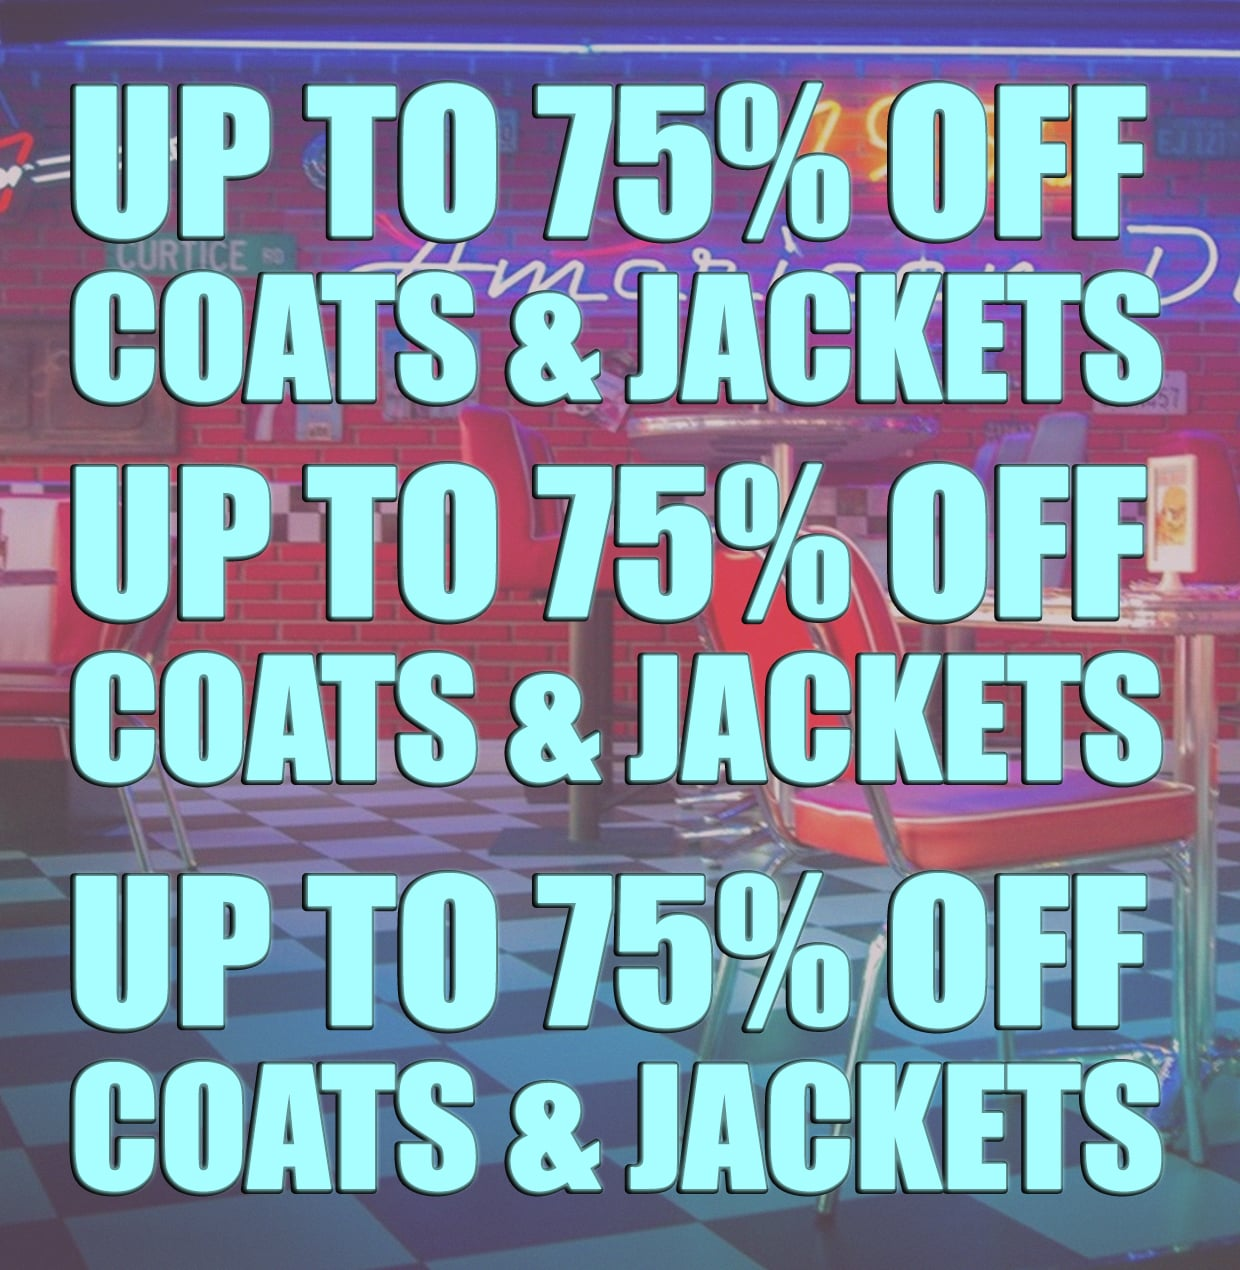 upto 70% off jackets